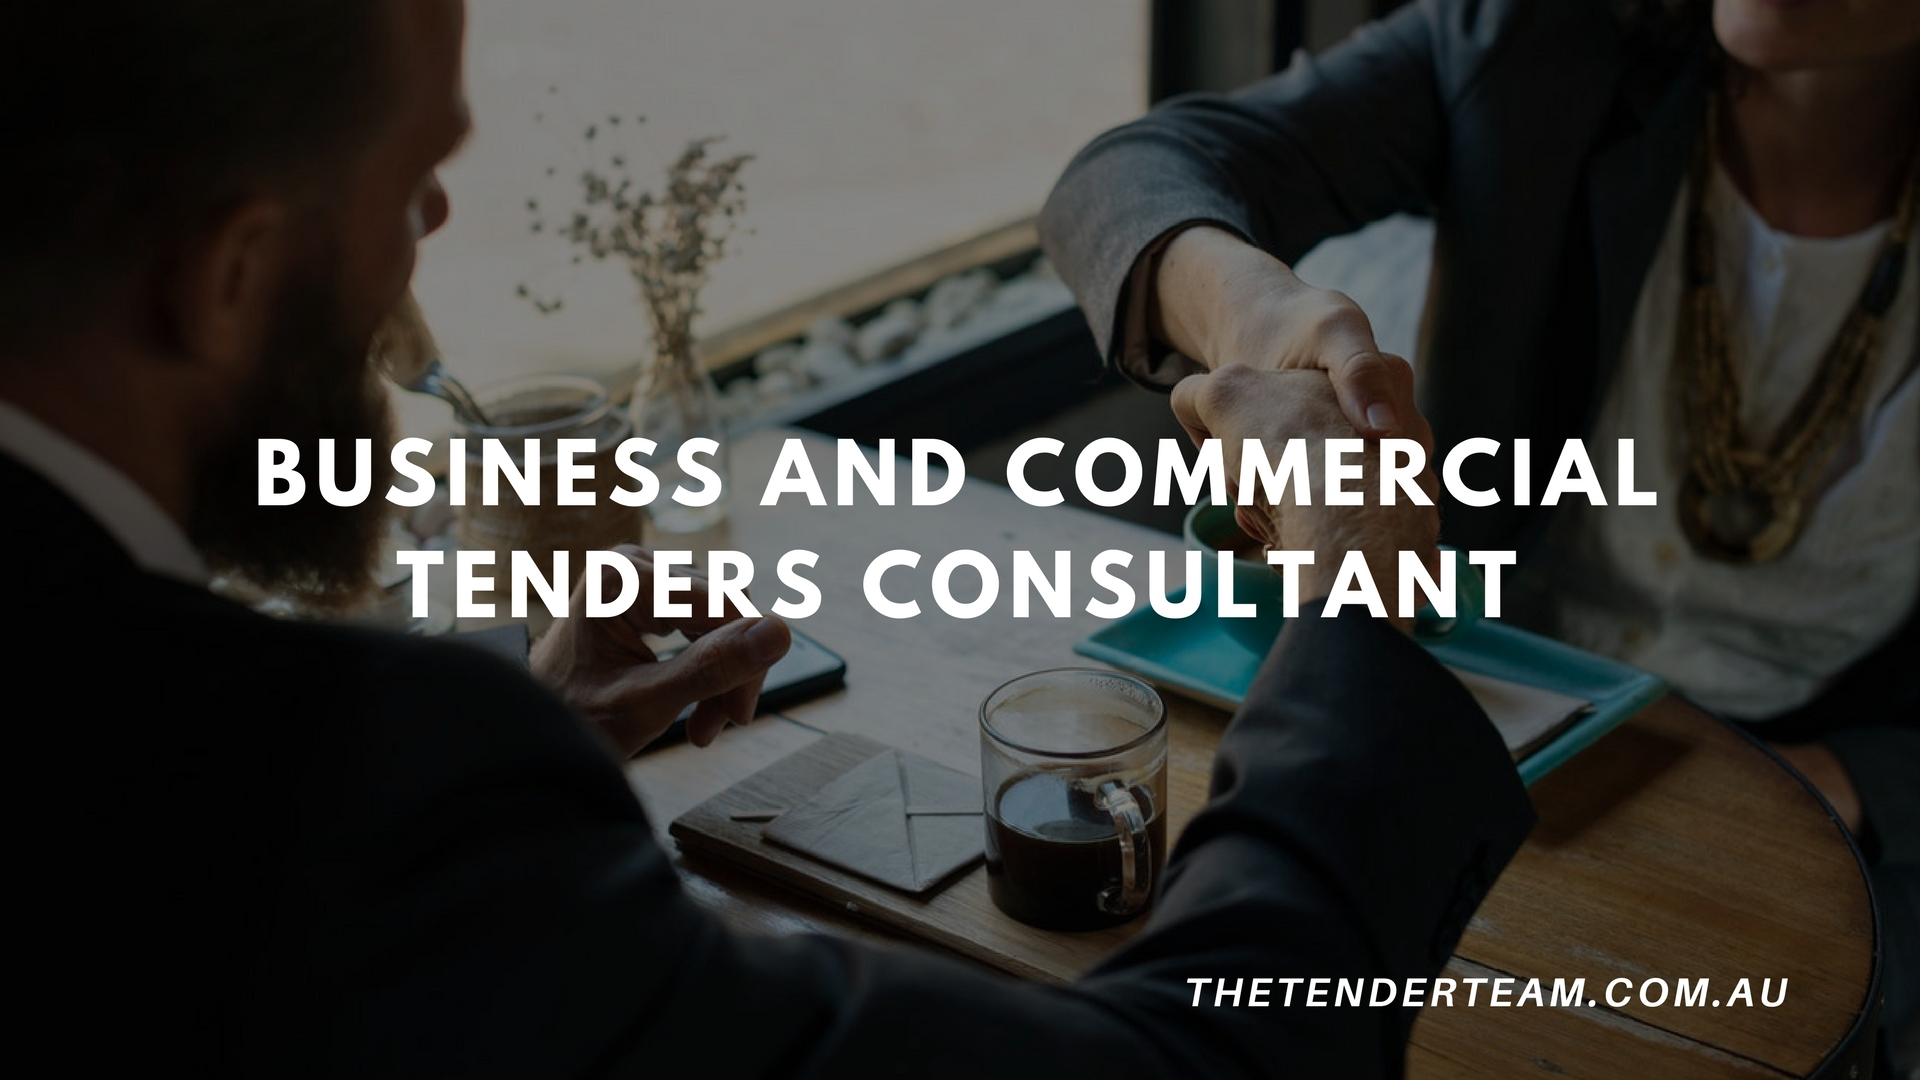 Business and Commercial Tenders Consultant